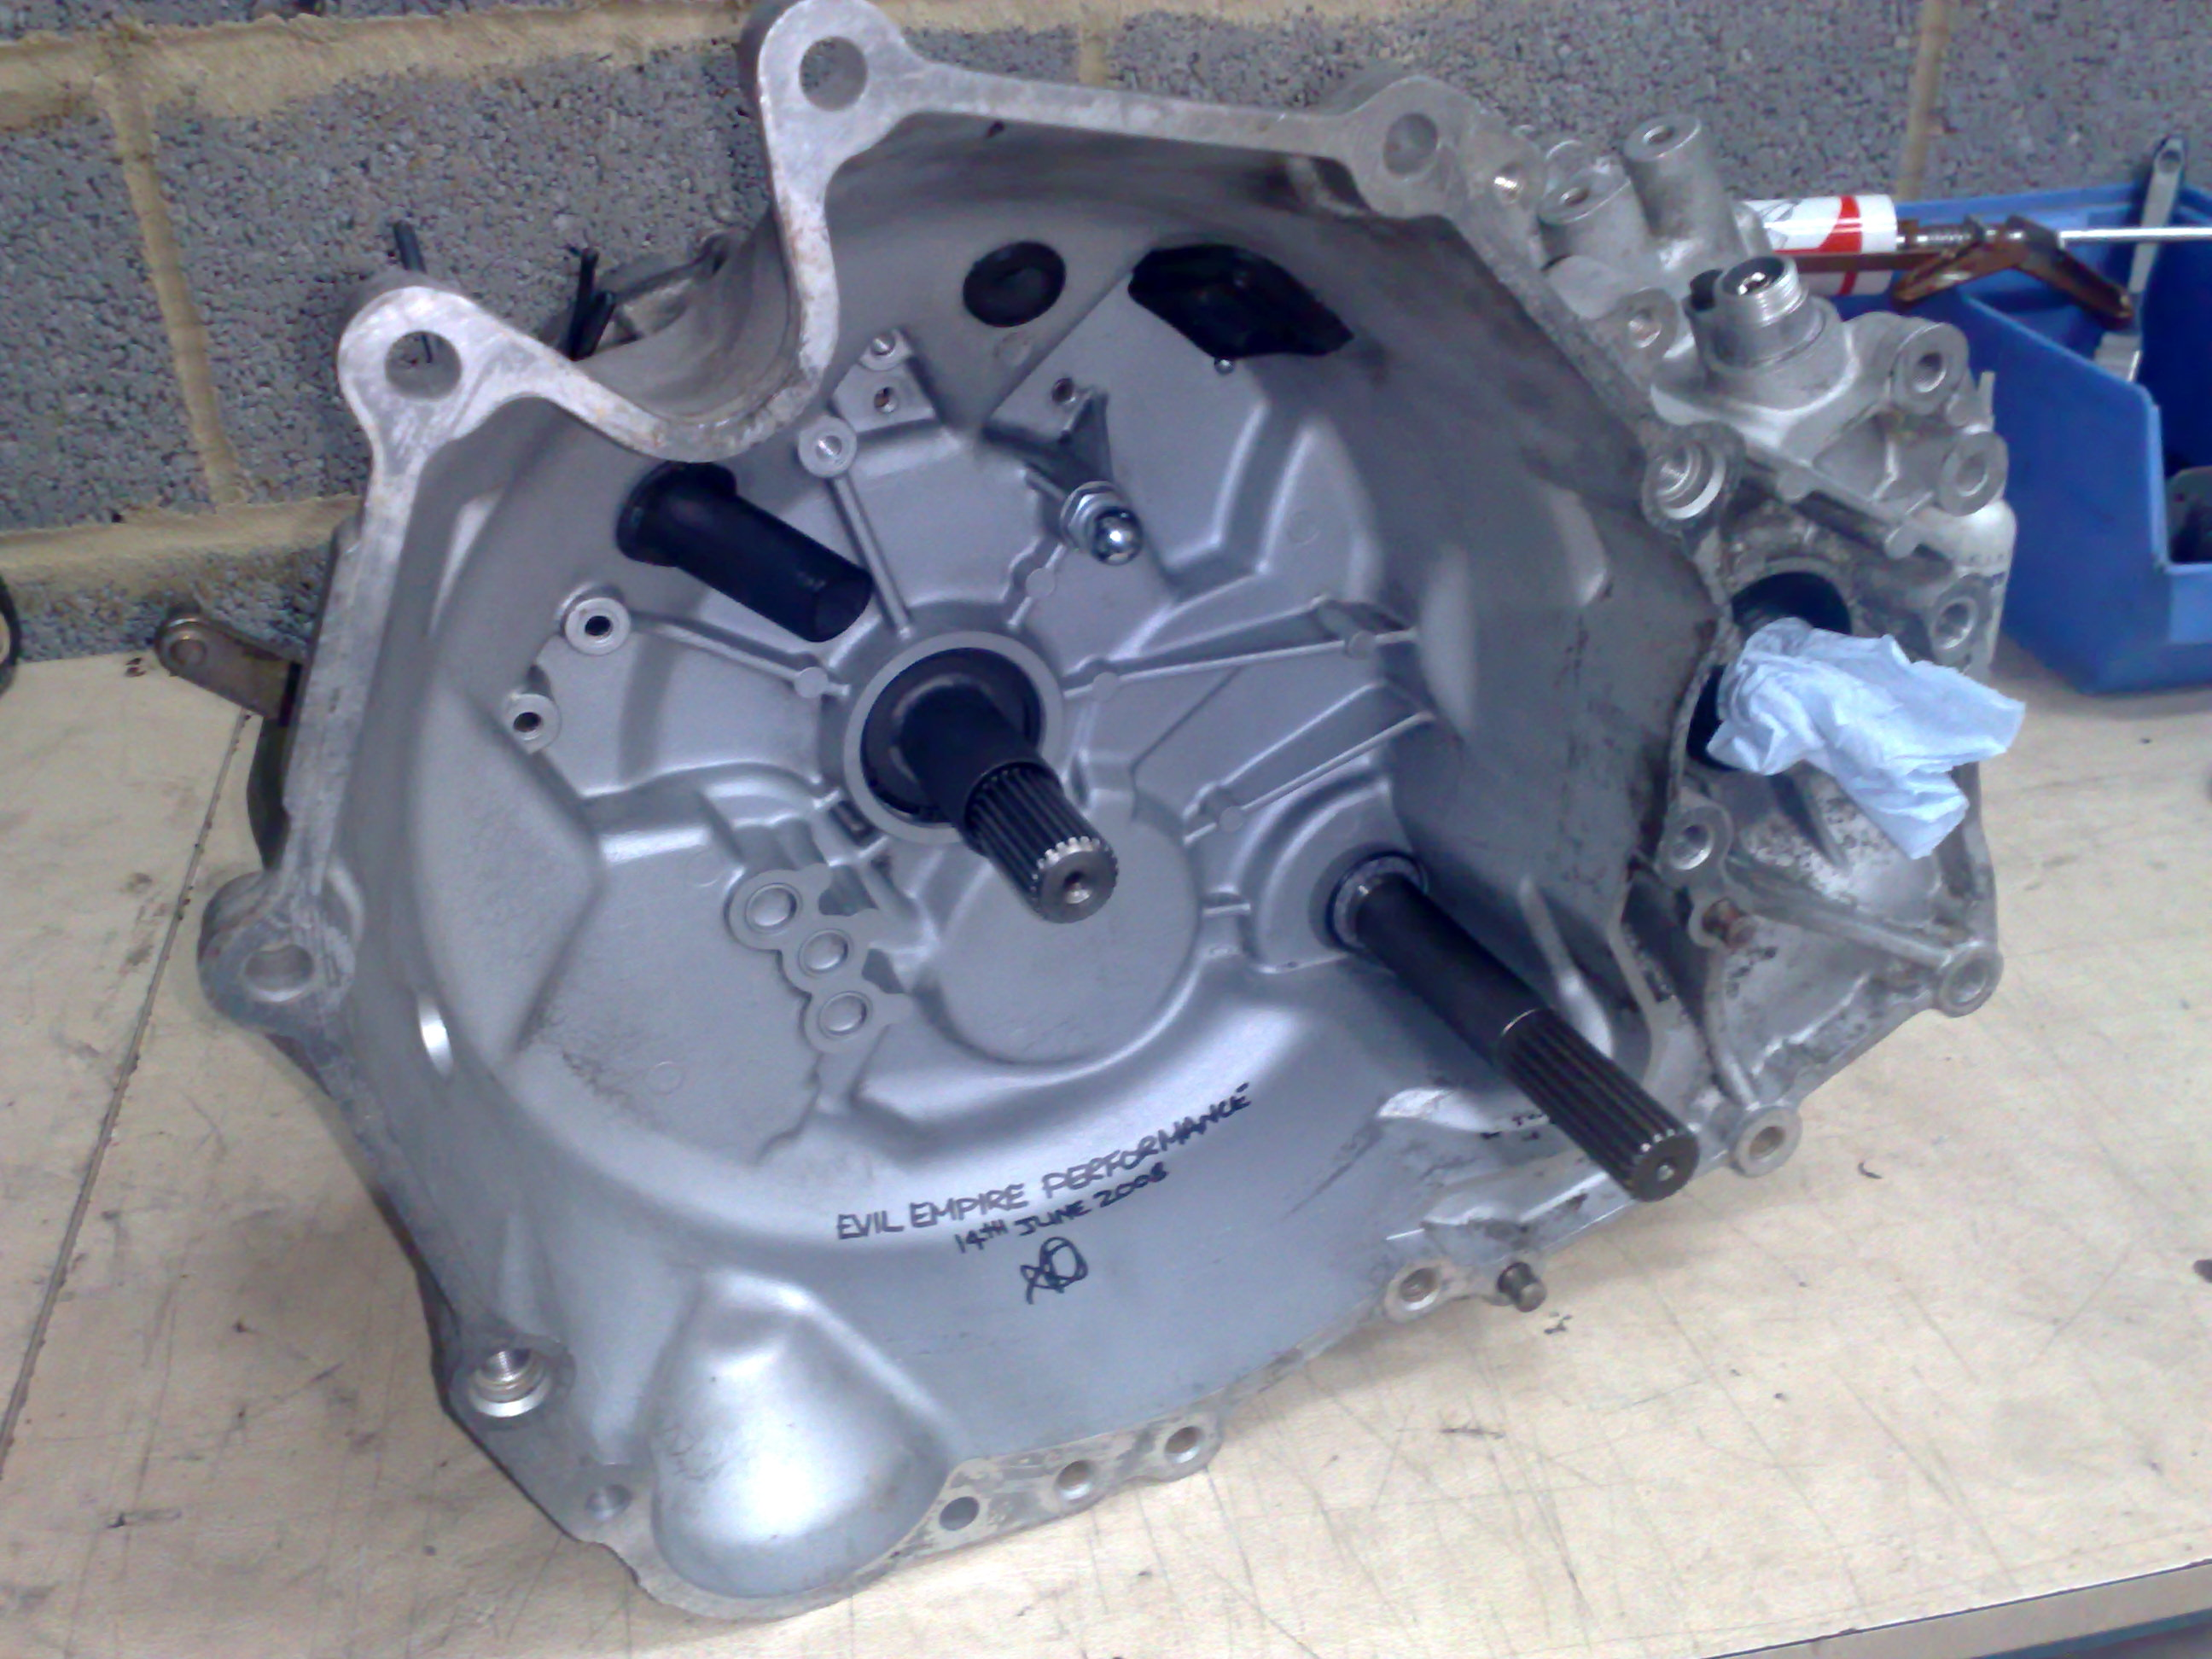 Gearbox and Transferbox